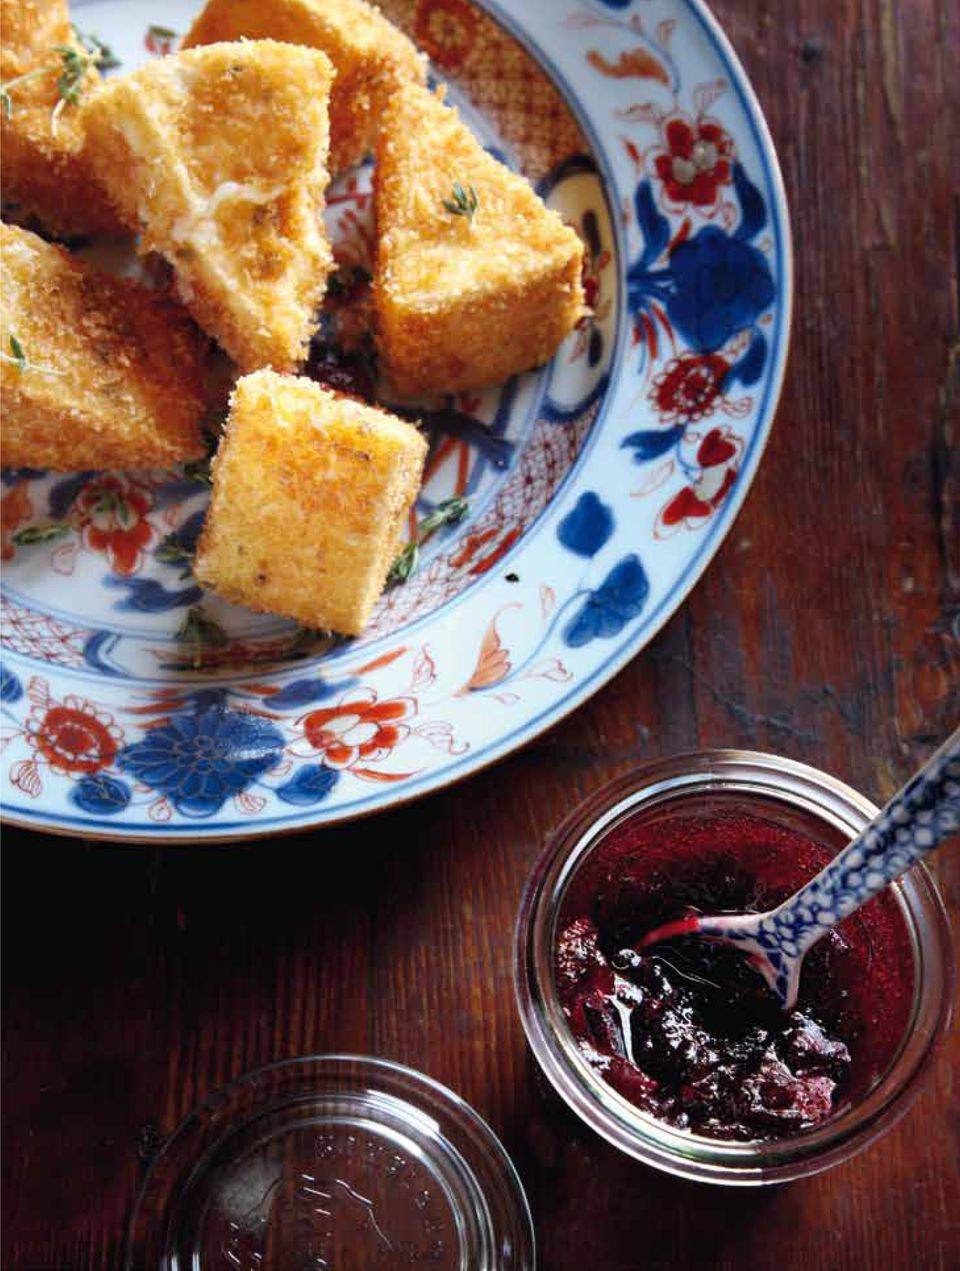 Fried Camembert and Cranberry Sauce